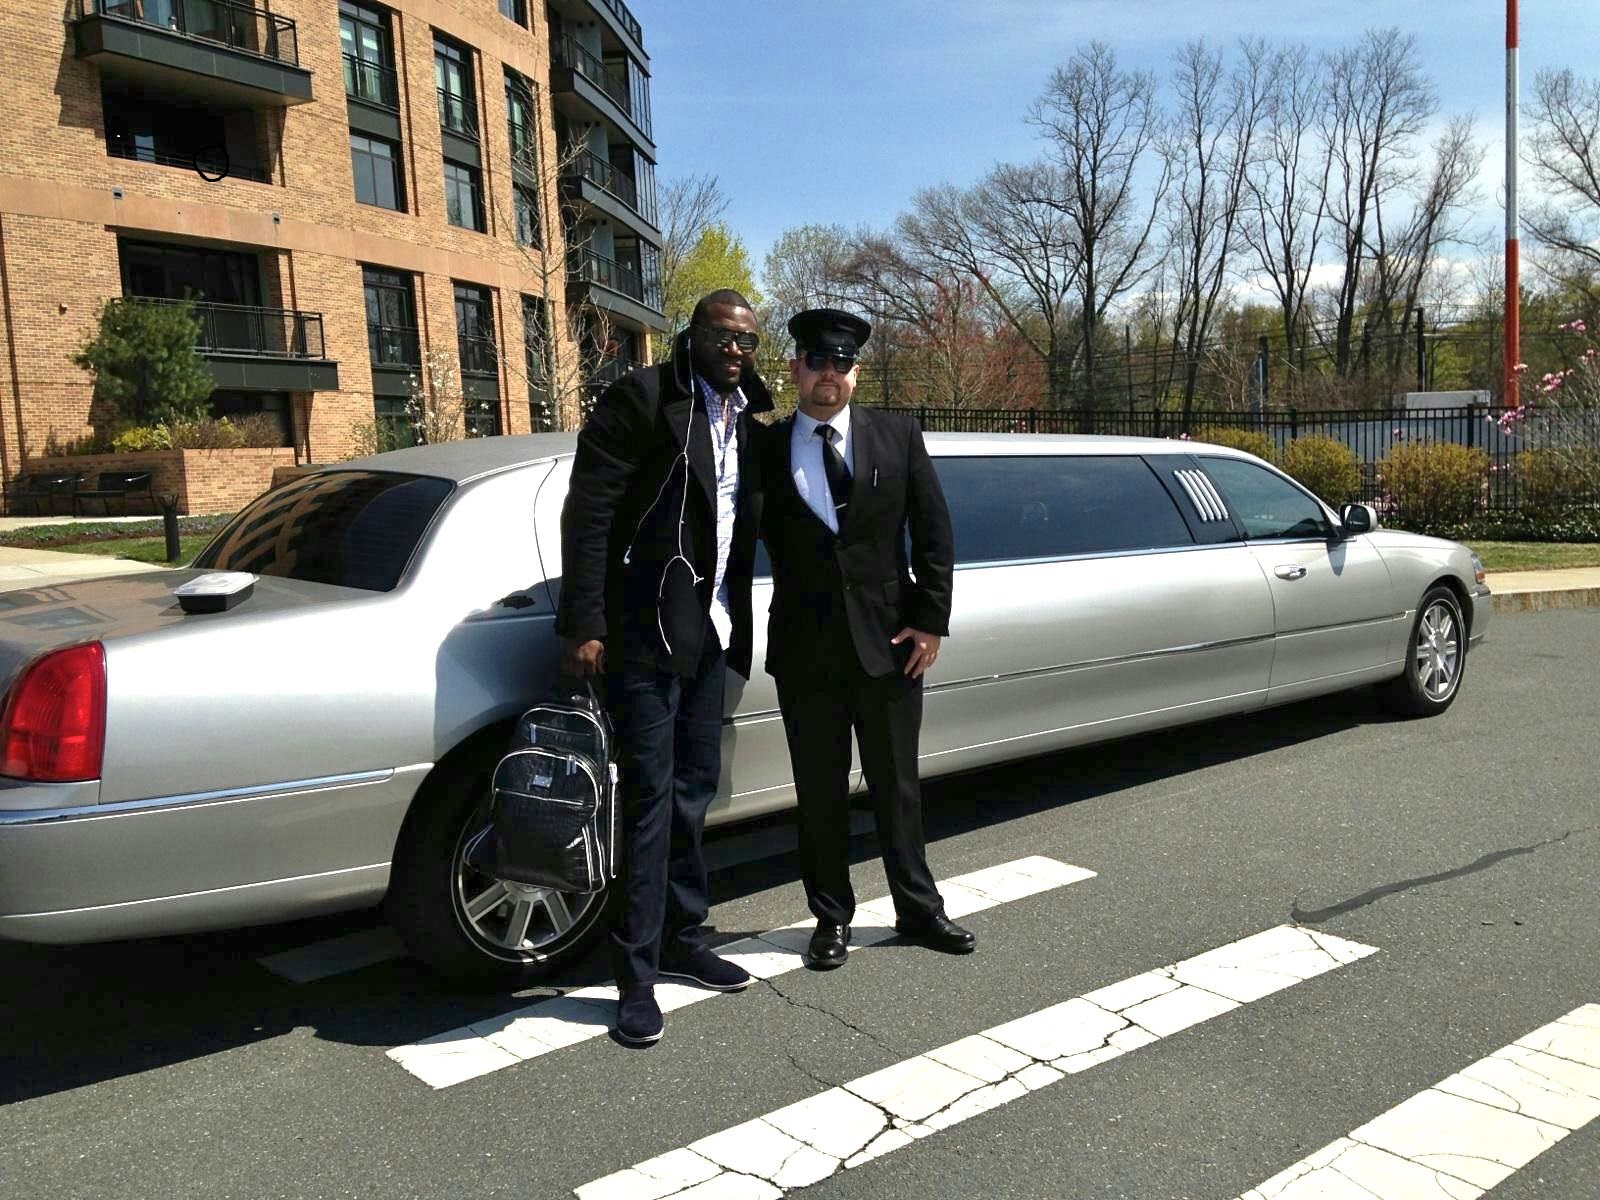 Limos for Rent Brookline NH 03033